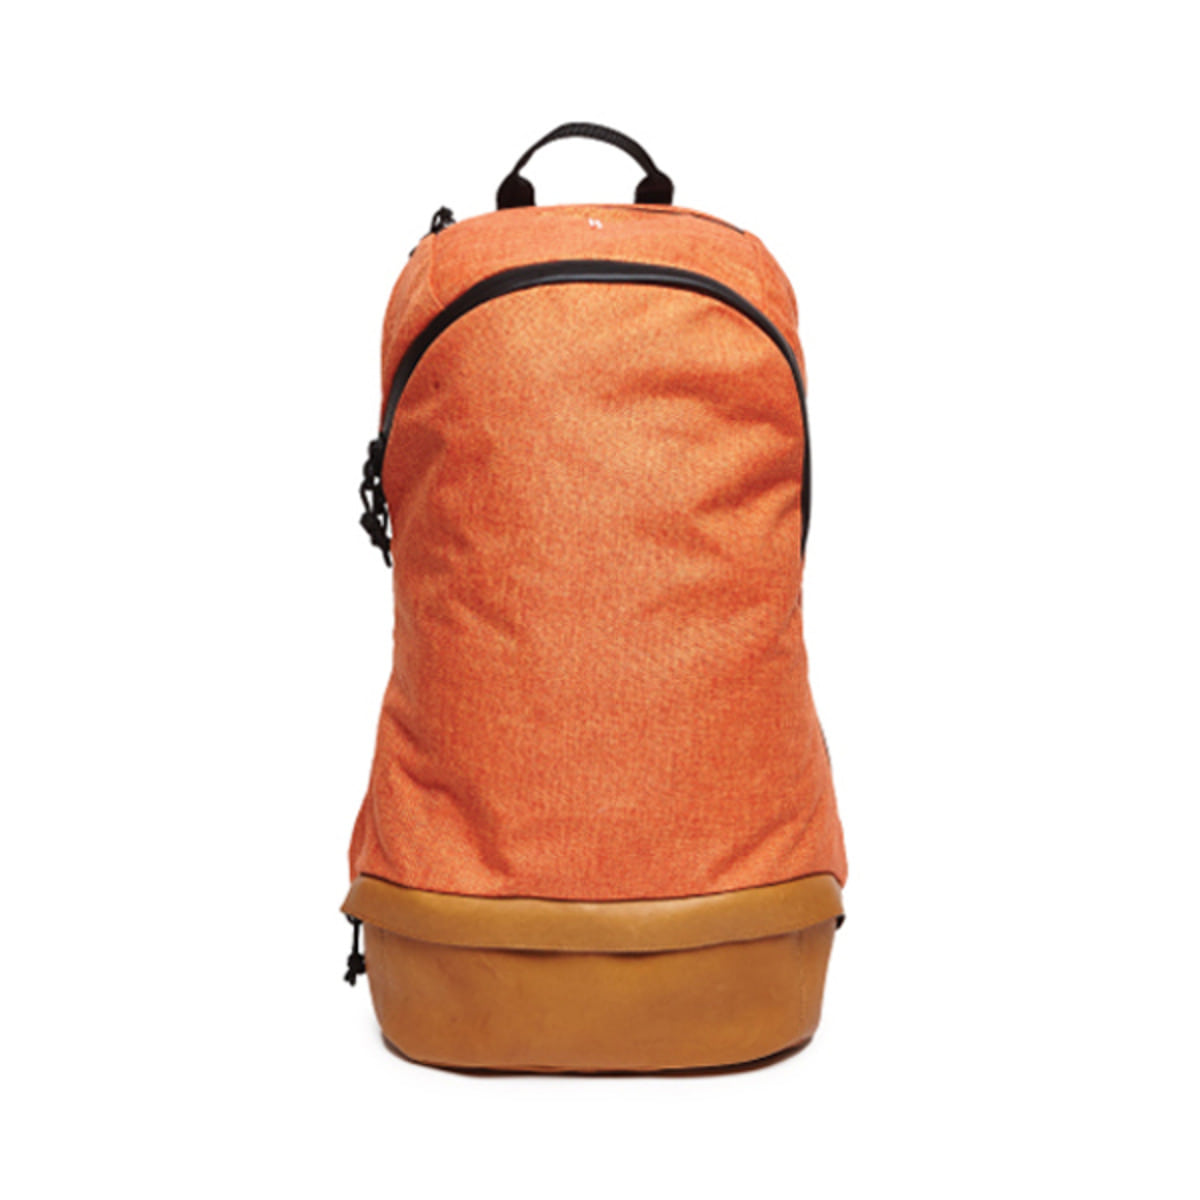 [TERG] DAY PACK 'ORANGE'